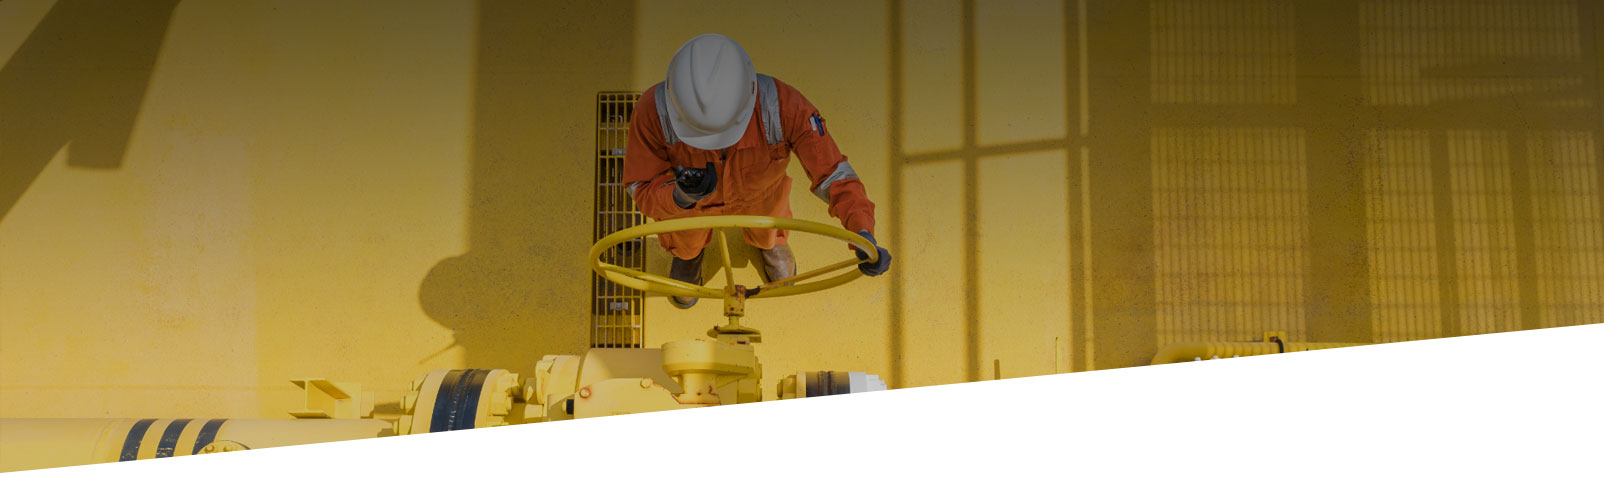 engineer operating oil and gas processing platform